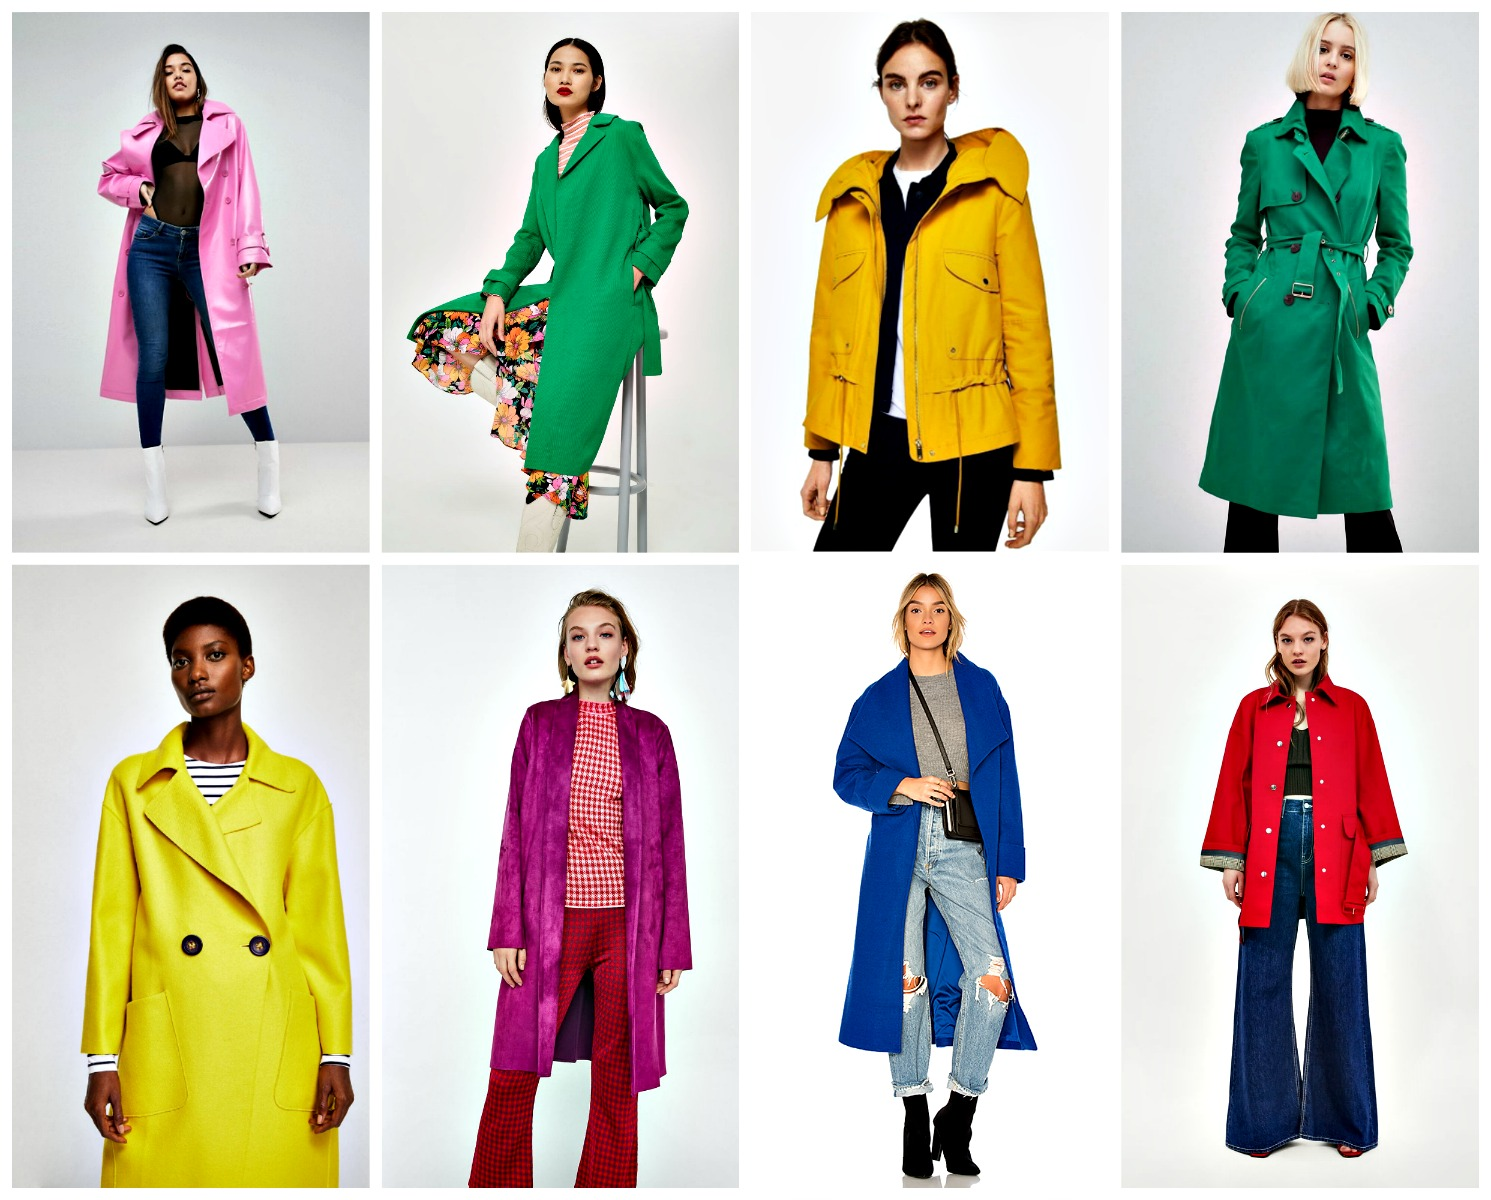 From left to right:   ASOS Oversized Vinyl Trench Coat  , $143, T  opShop Plisse Belted Duster Coat  , $110,   Mango Pockets Cotton Parka  , $119,   River Island Double Breasted Trench Coat  , $135,   Mango Unstructured Wool Blend Coat  , $149,   Zara Faux Suede Coat  , $49 (come in other colors as well),   Revolve Maddie Coat  , $100 (on sale),   Zara Contrasting Trench Coat  . $179